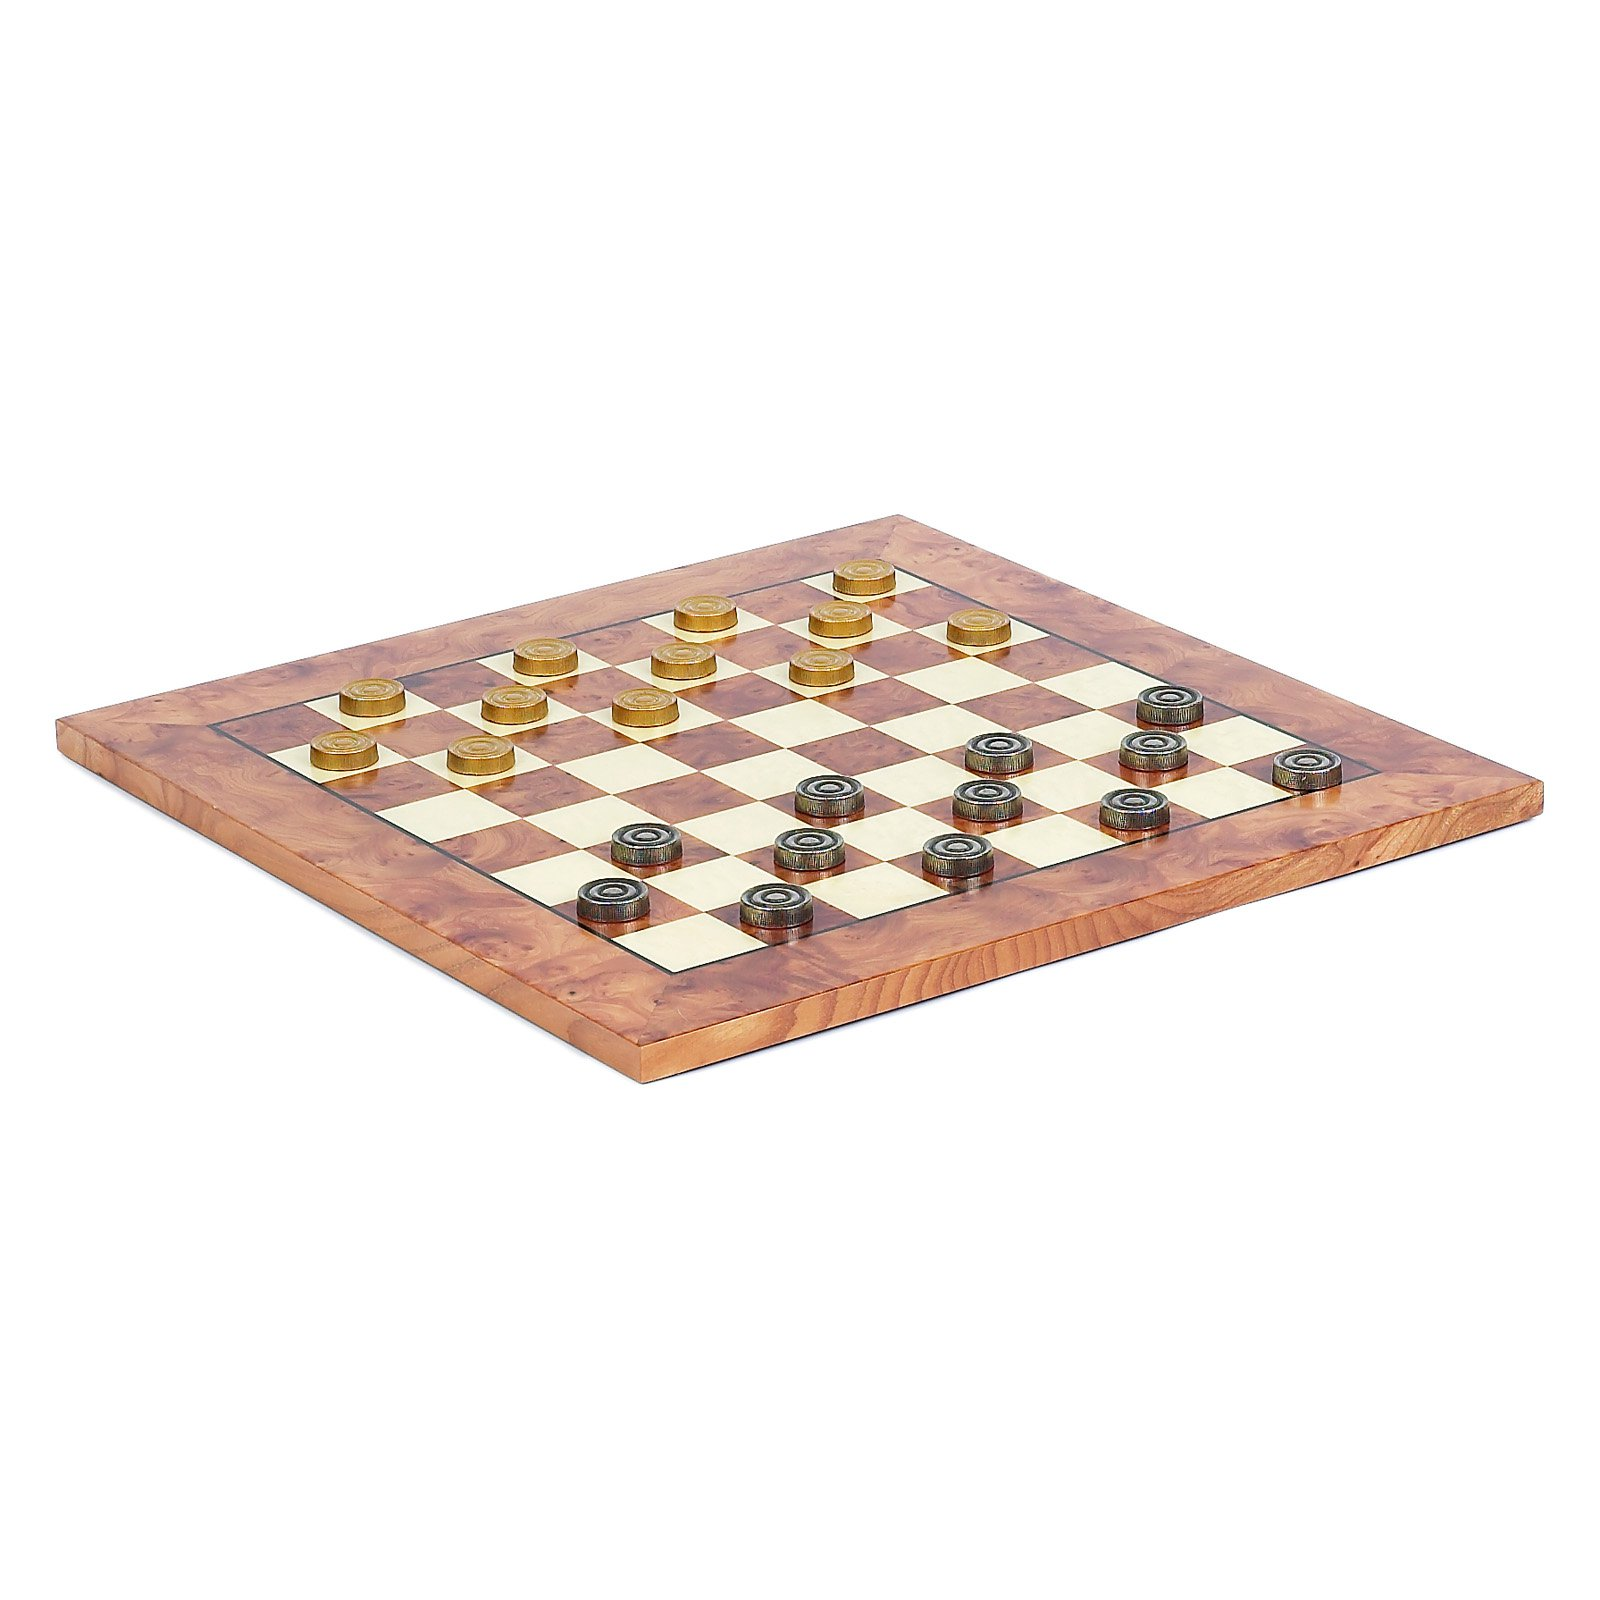 Exotic Chess Board & Metal Checkers from Italy by Cambor Games